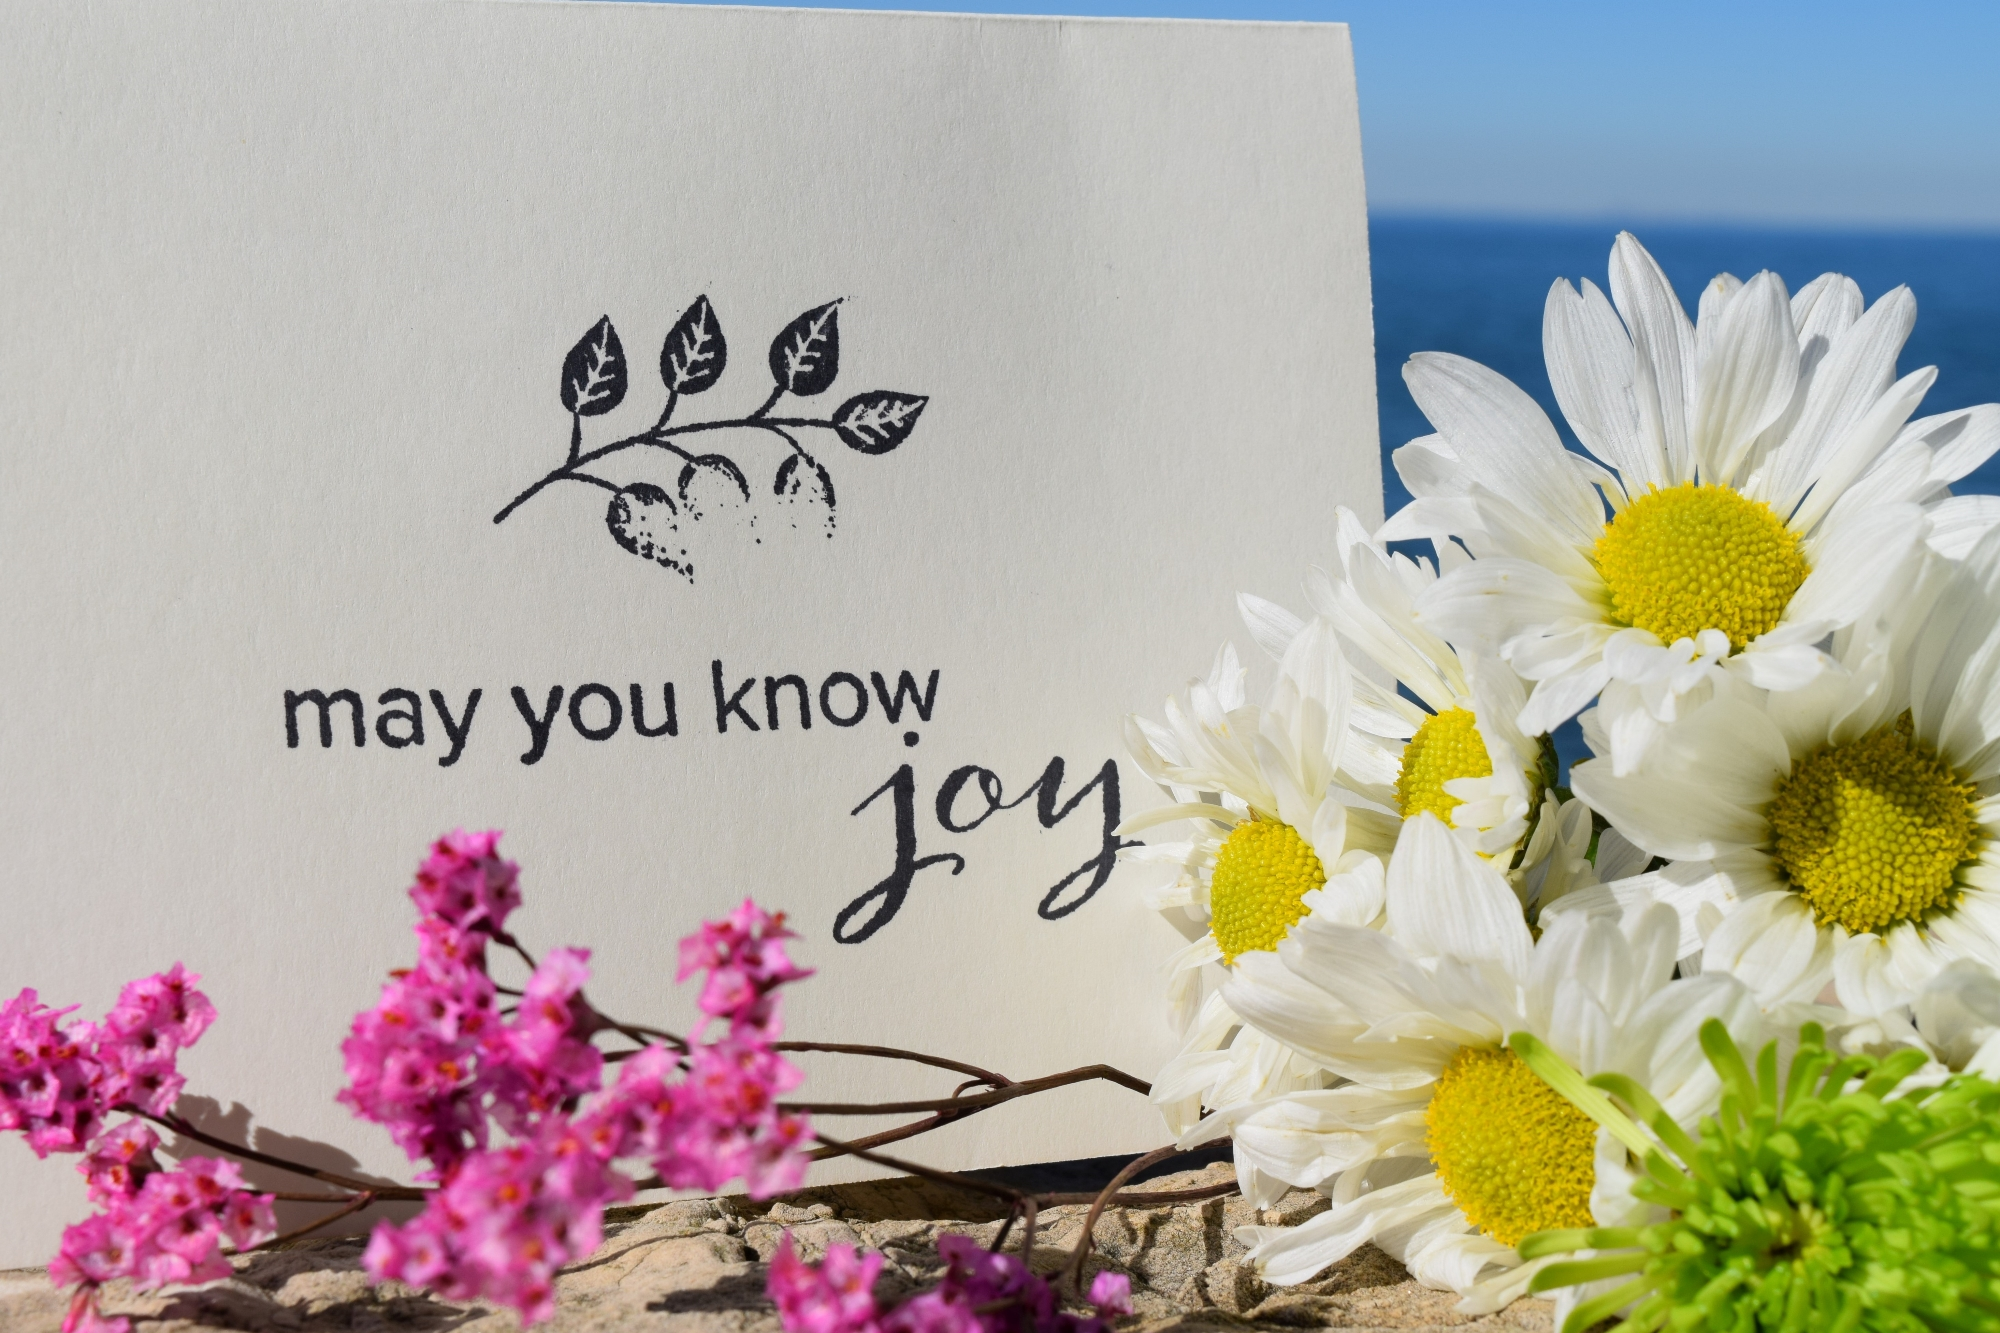 May You Know Joy meditation and intention cards